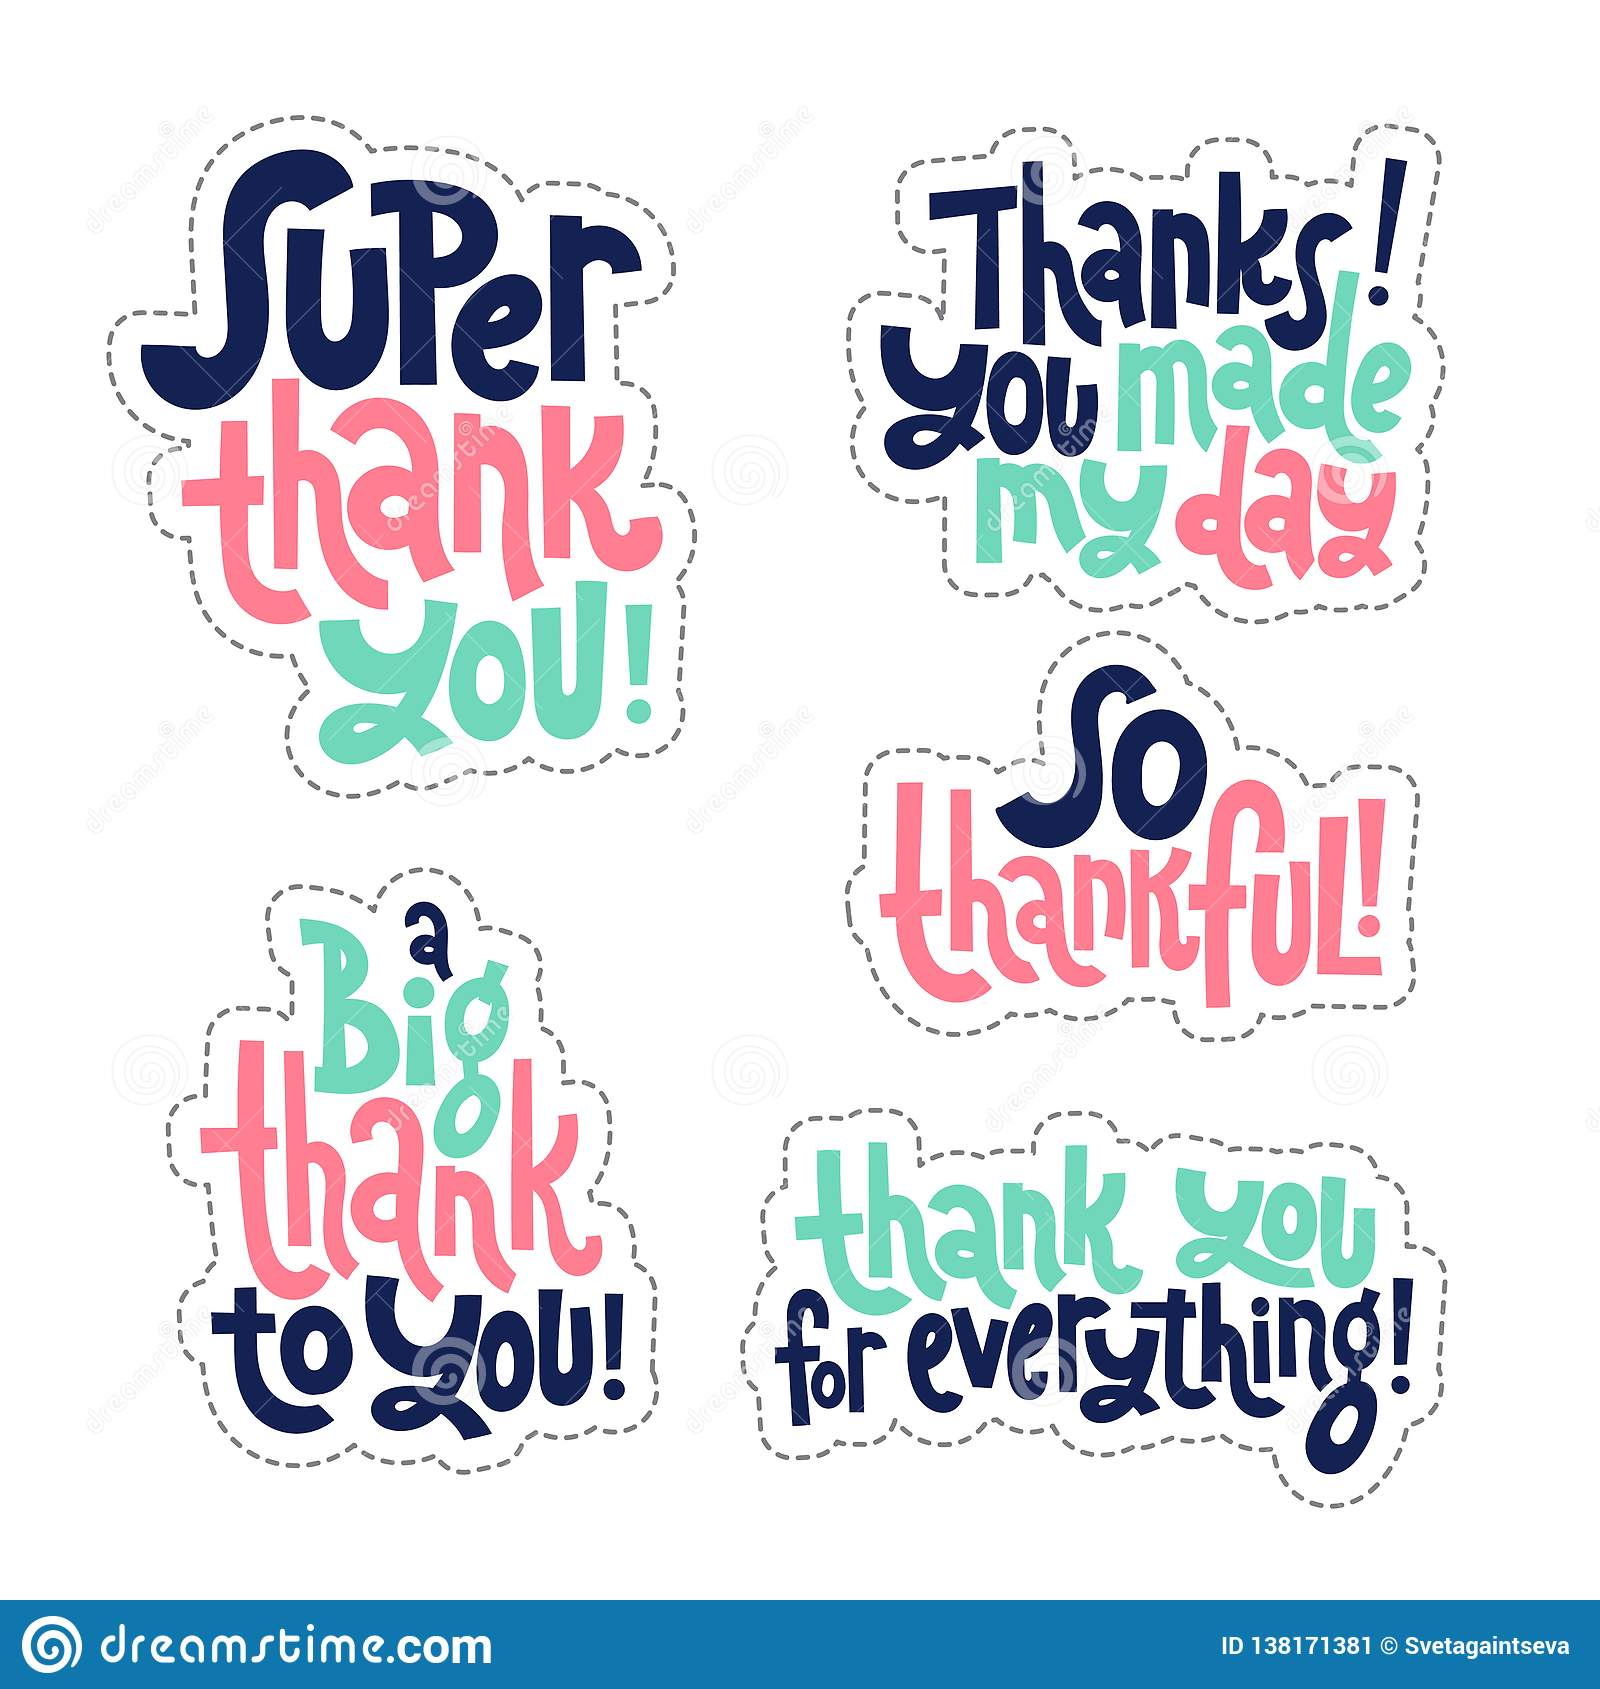 Thank You Quotes And Stickers Stock Vector Illustration Of Emblem